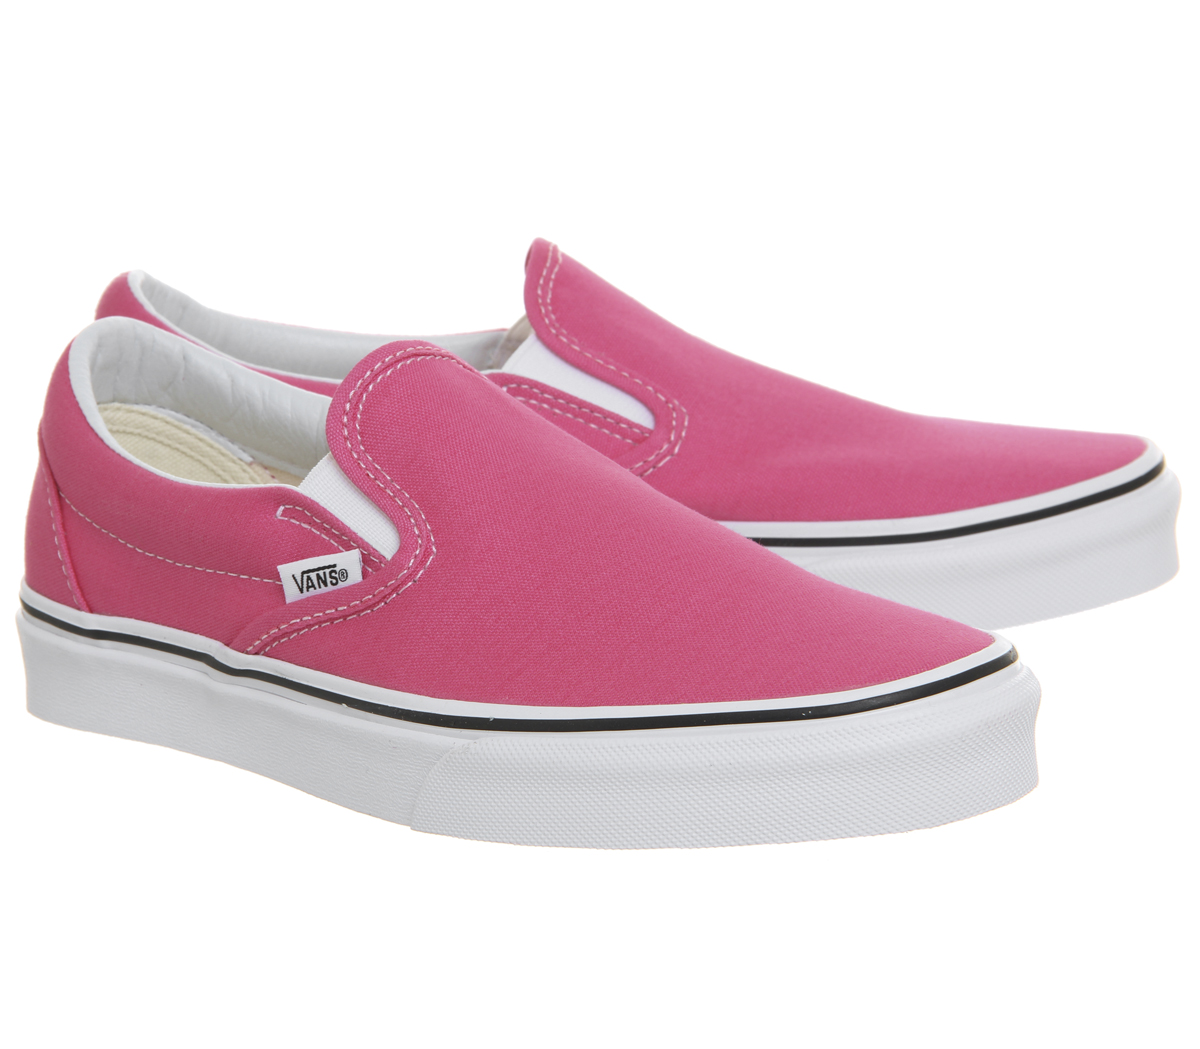 d4f1bbc544756c Sentinel Womens Vans Vans Classic Slip On Trainers Hot Pink True White  Trainers Shoes